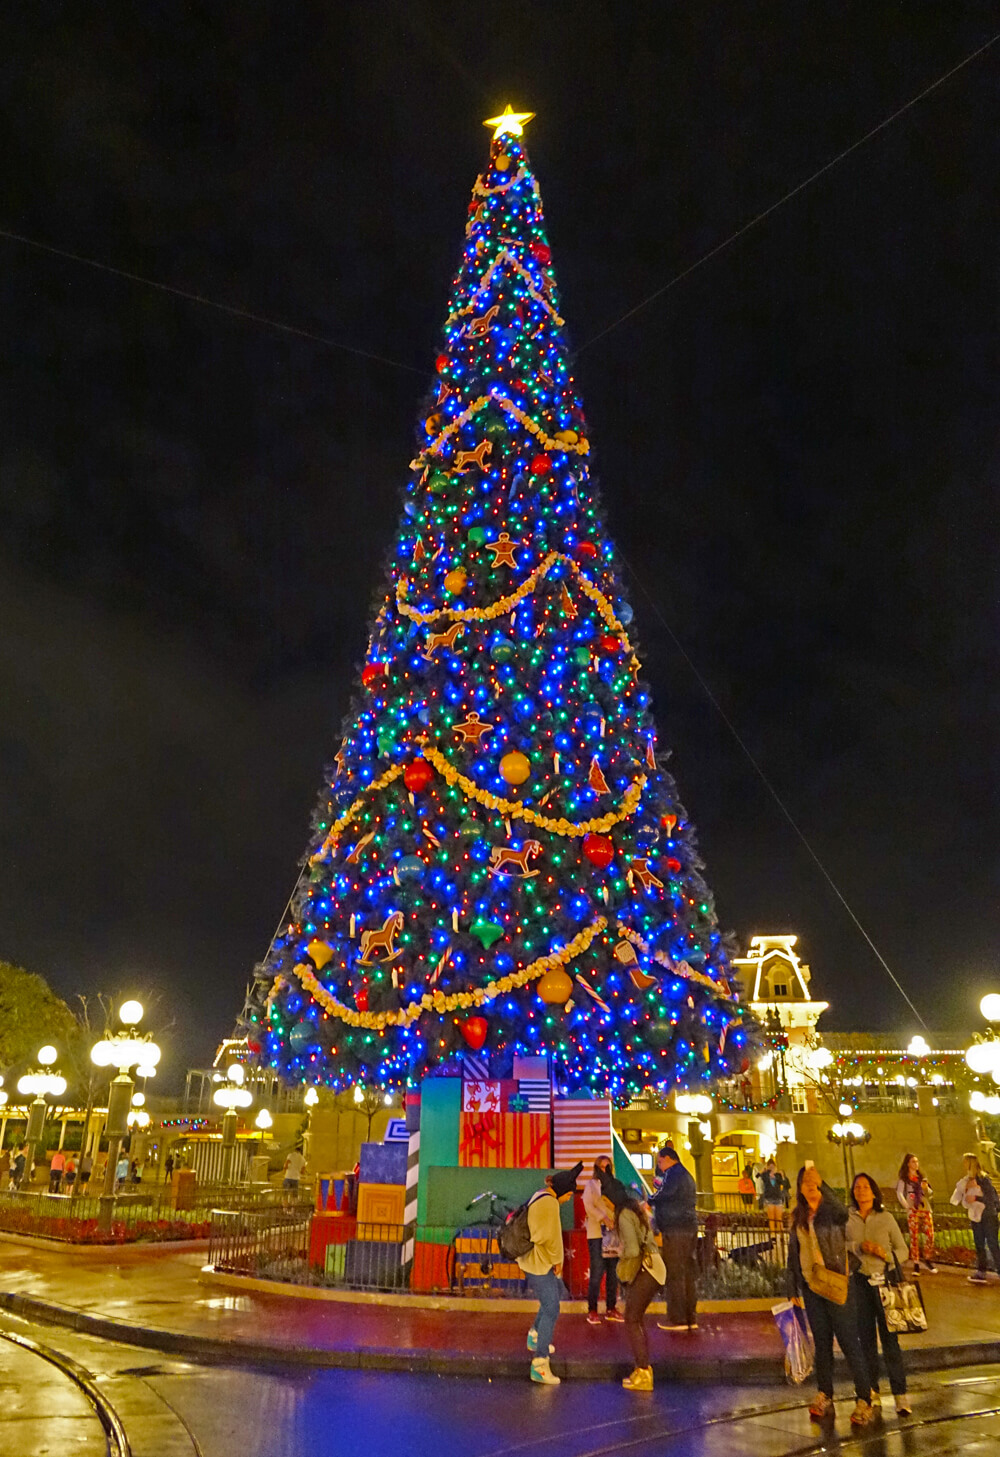 disney world holiday events 2018 magic kingdom tree - Disney Christmas Tree